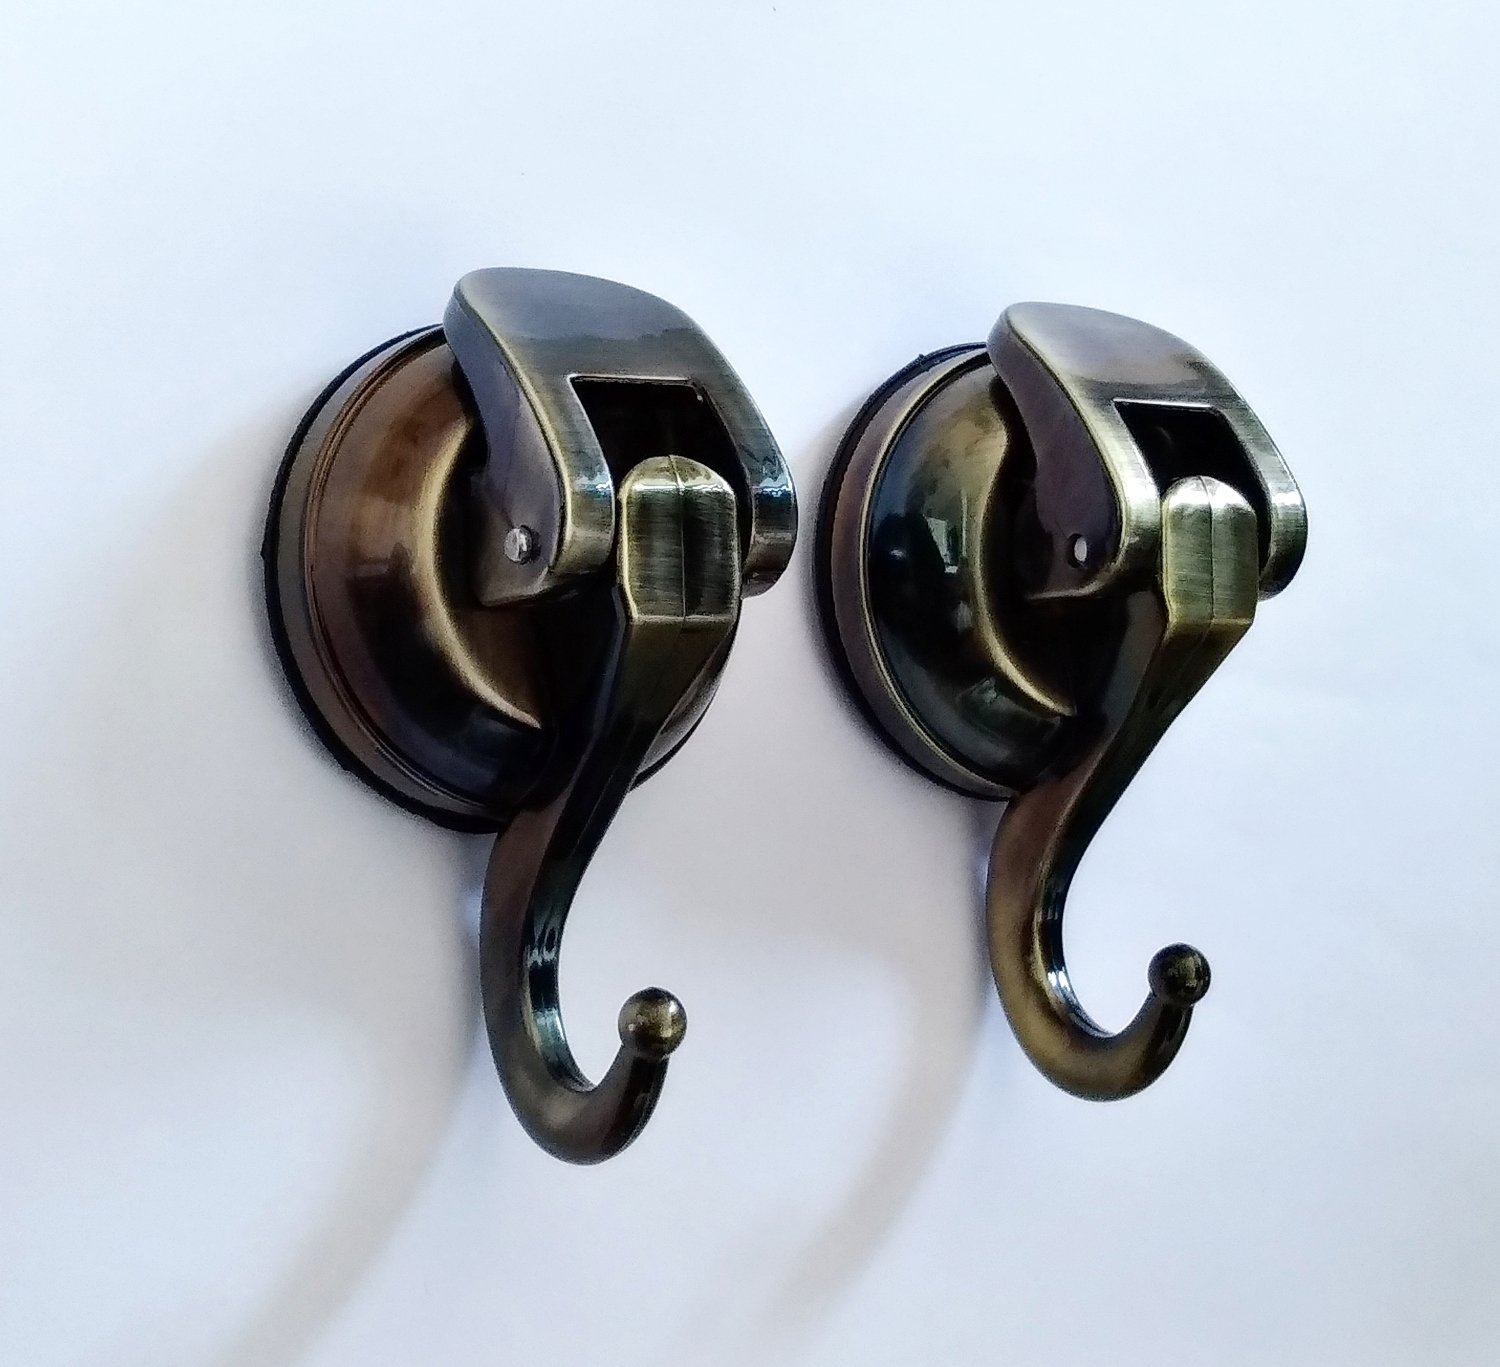 Togu PB57-L02-AB ABS Vacuum Thick Rubber Suction Cup Hooks,Removable Heavy Duty Suction Cup Hooks, as Cup Holder, Key Hook, Towel/Coat/hat/Handbag Hook/Holder, Bathroom Storage, Antique Bronze,2pcs by Togu